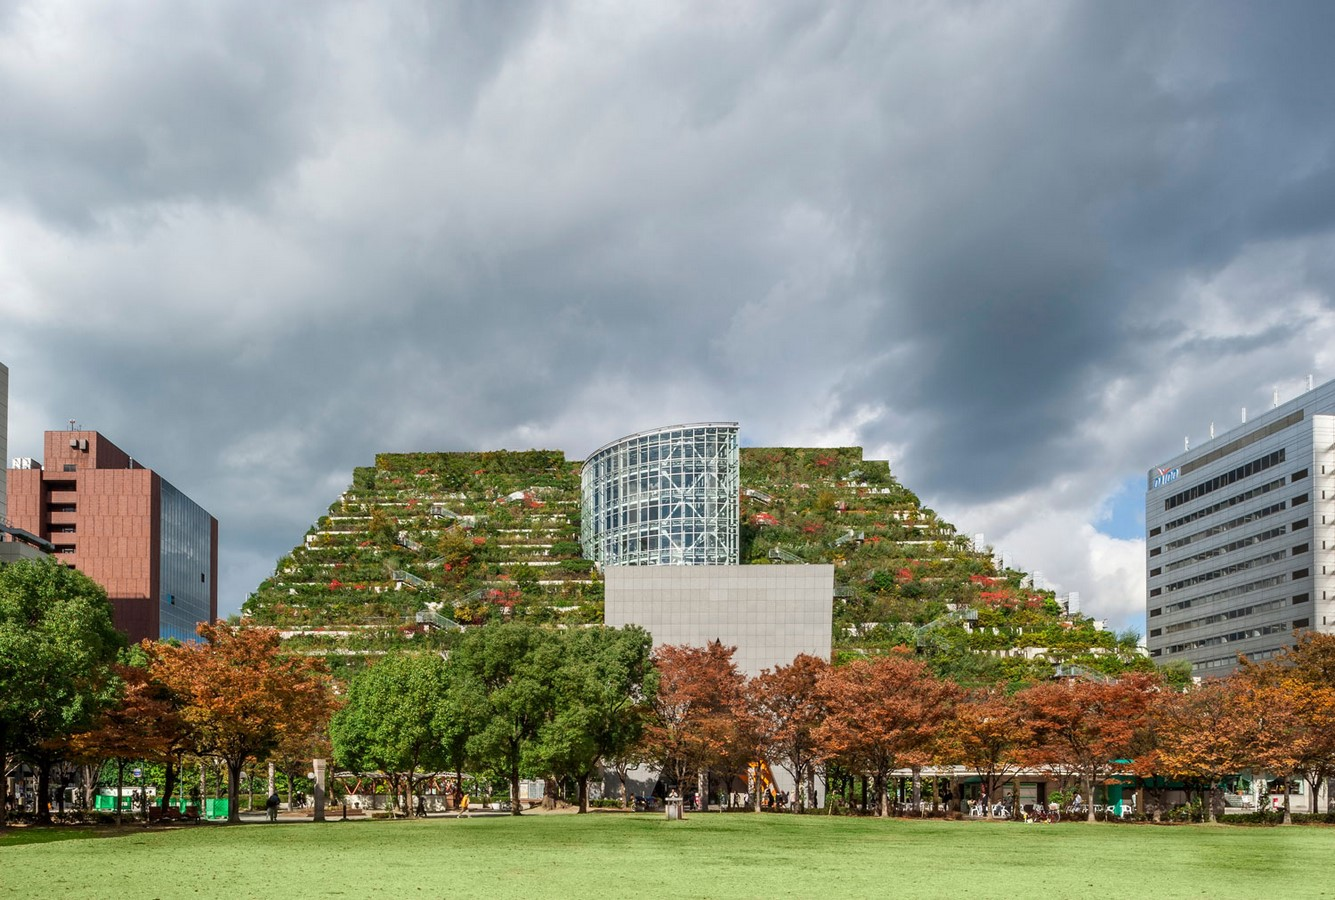 Green Roofs: An urban agricultural opportunity - Sheet14